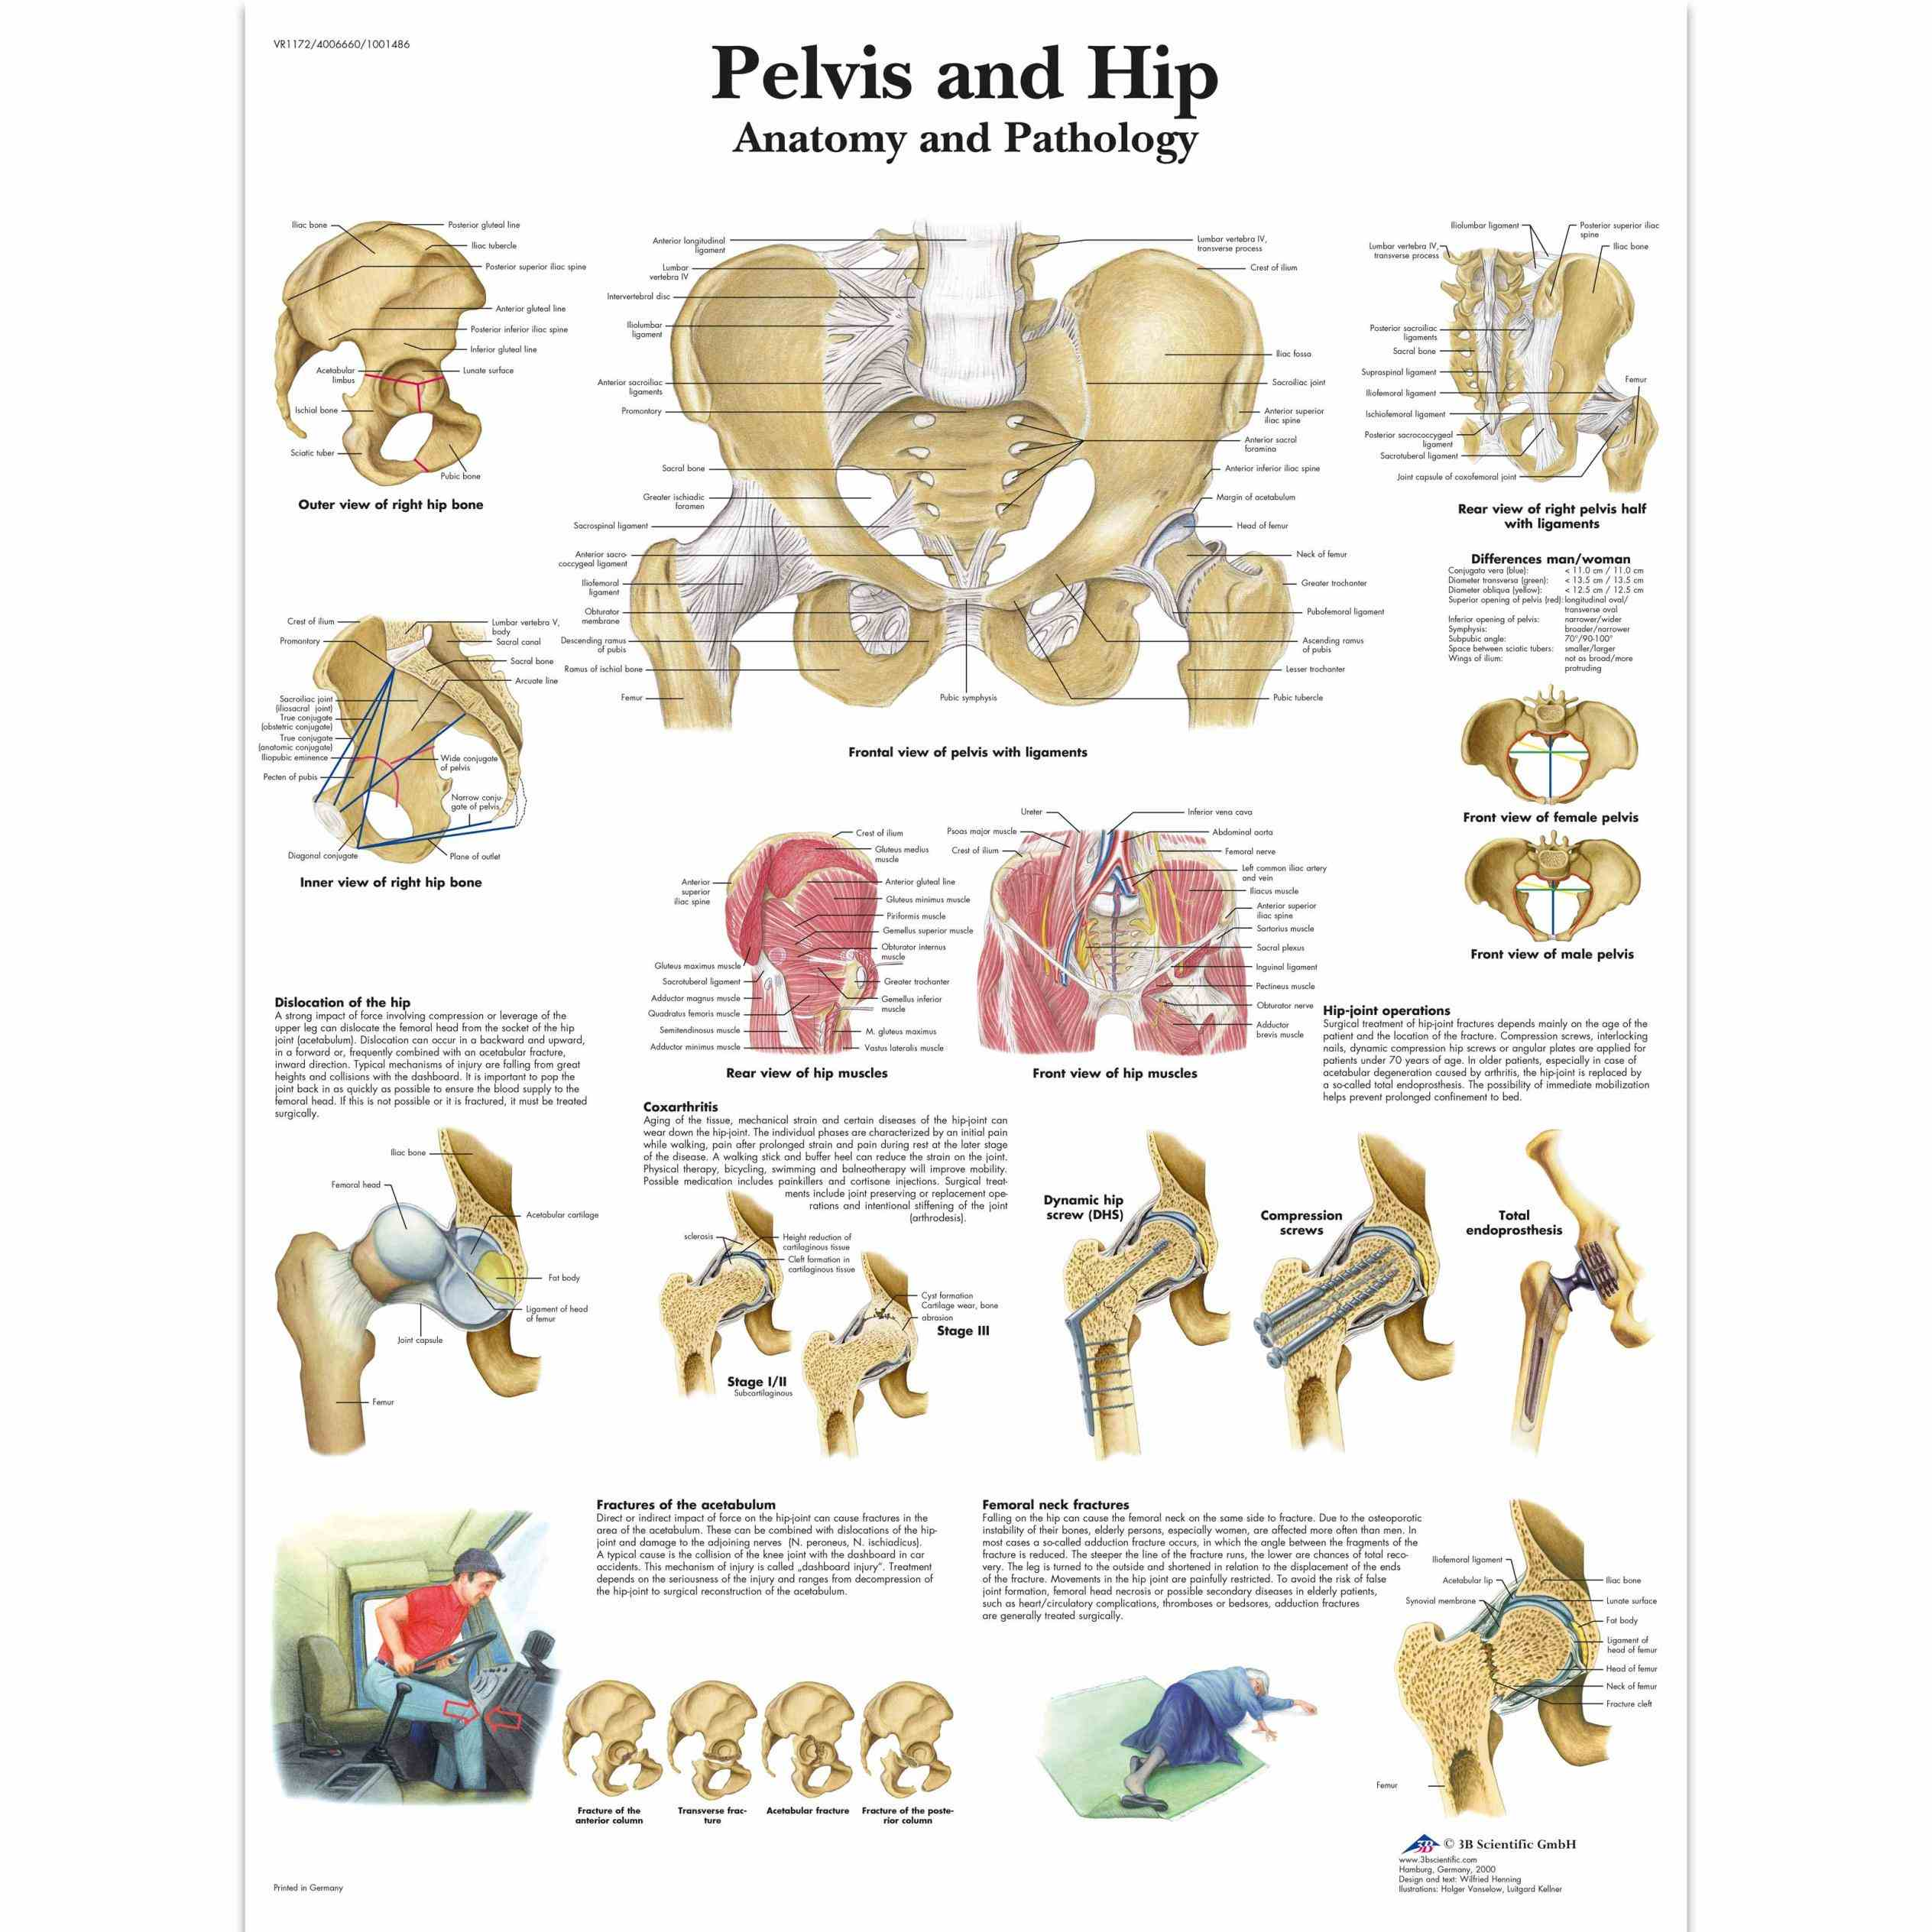 rounded head the hip Anatomy Of Hip And Pelvis anatomy the joint is a ball and socket formed by